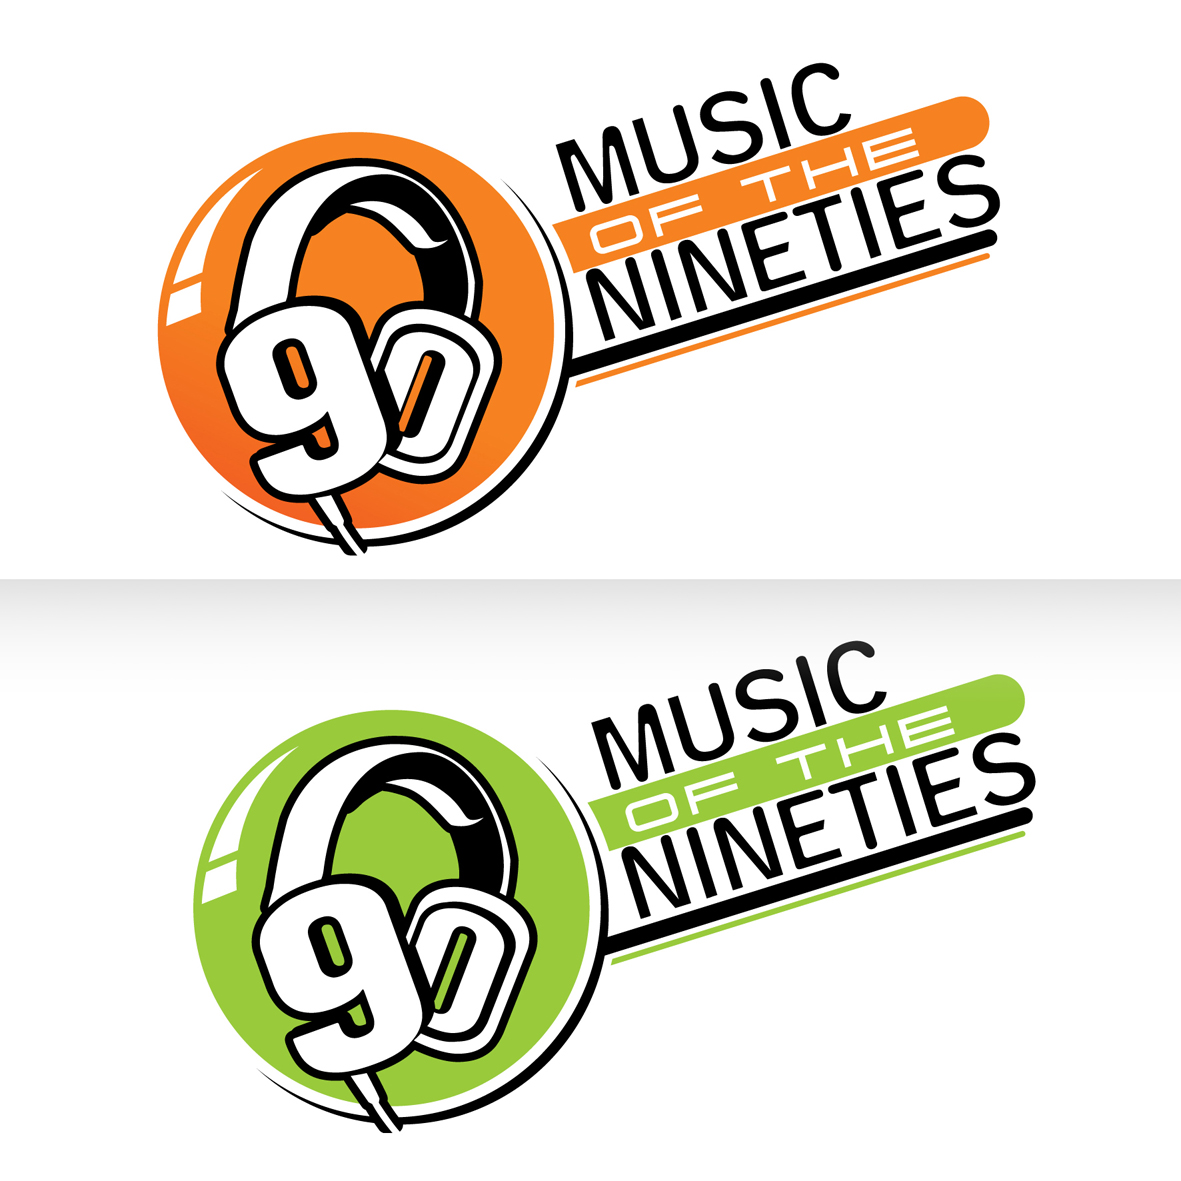 Logo Design by Alexander Ioannidis - Entry No. 36 in the Logo Design Contest Music of the Nineties Logo.